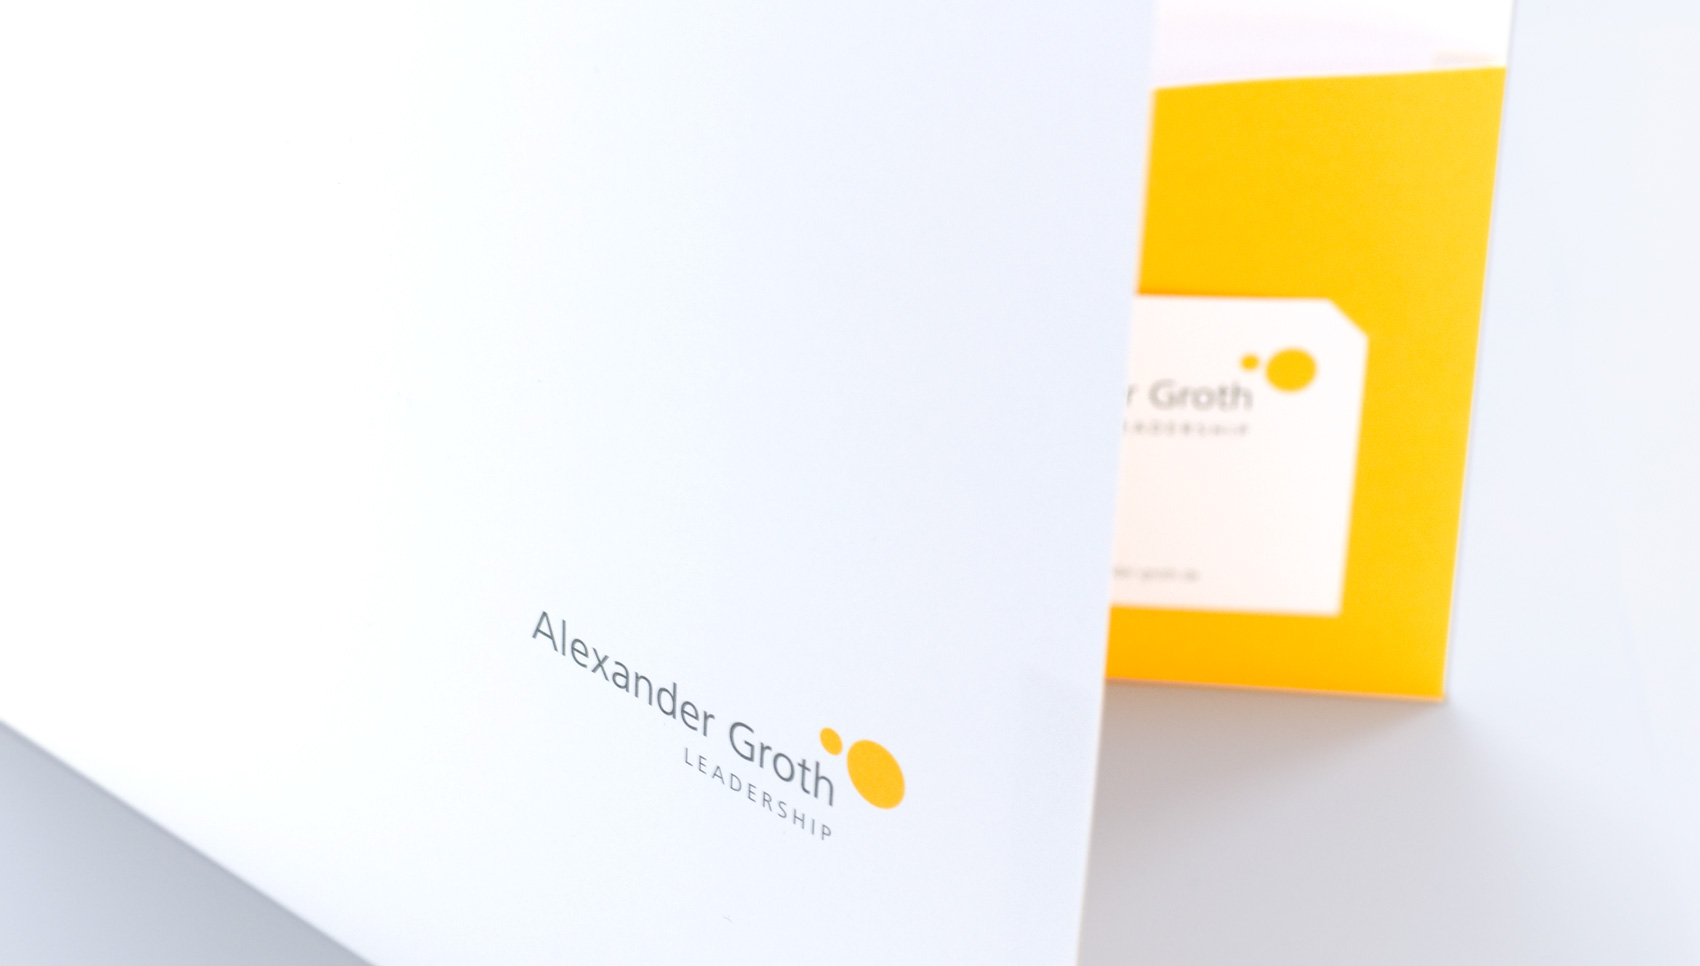 Alexander Groth Leadership Dreieich